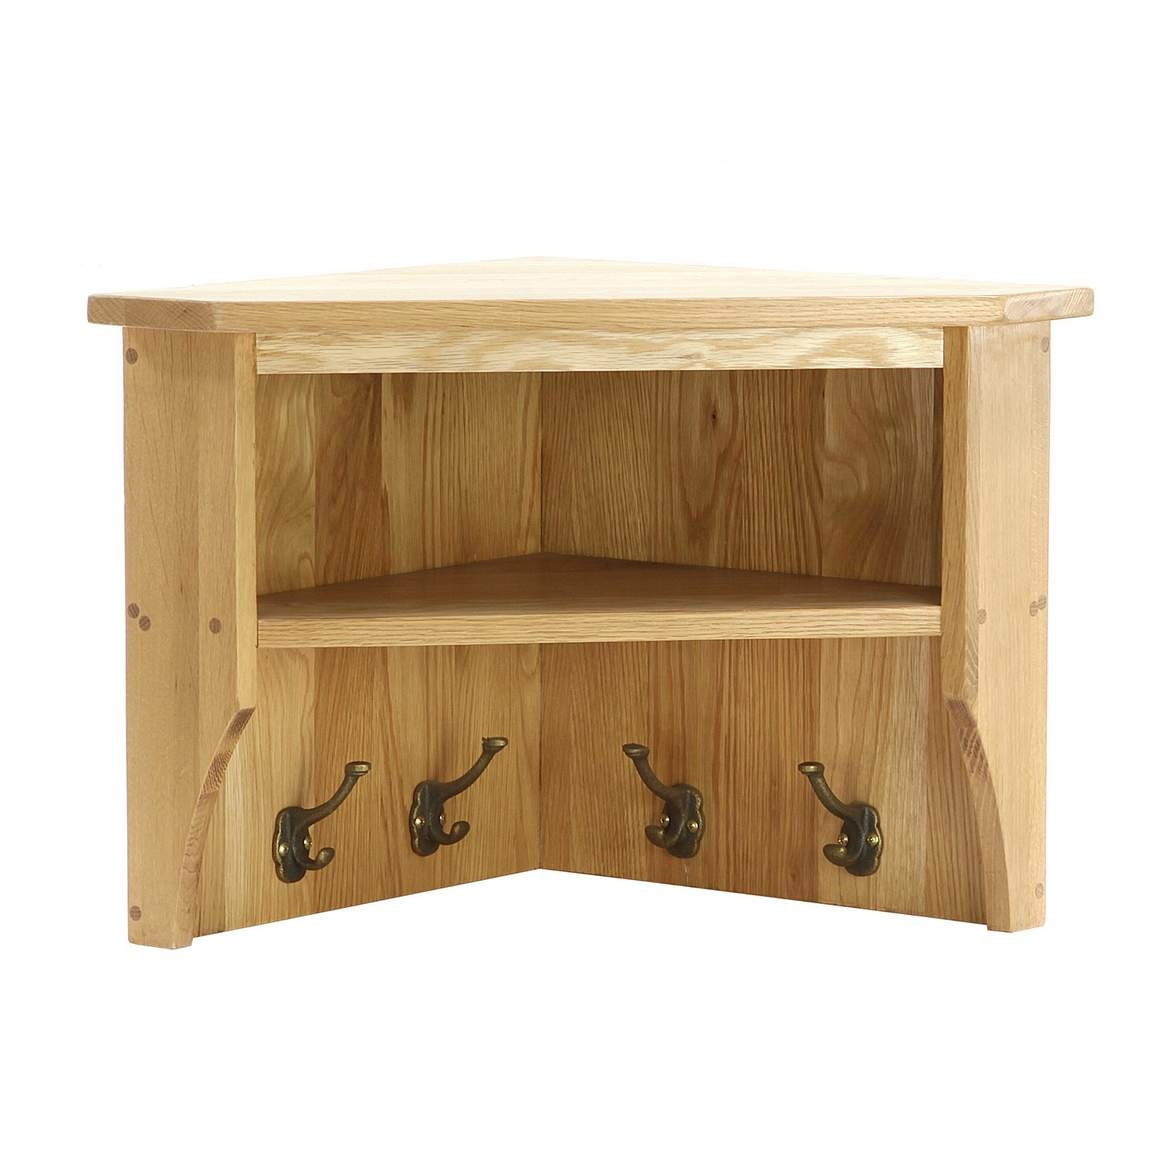 Oak Small Corner Wall Shelf NB090